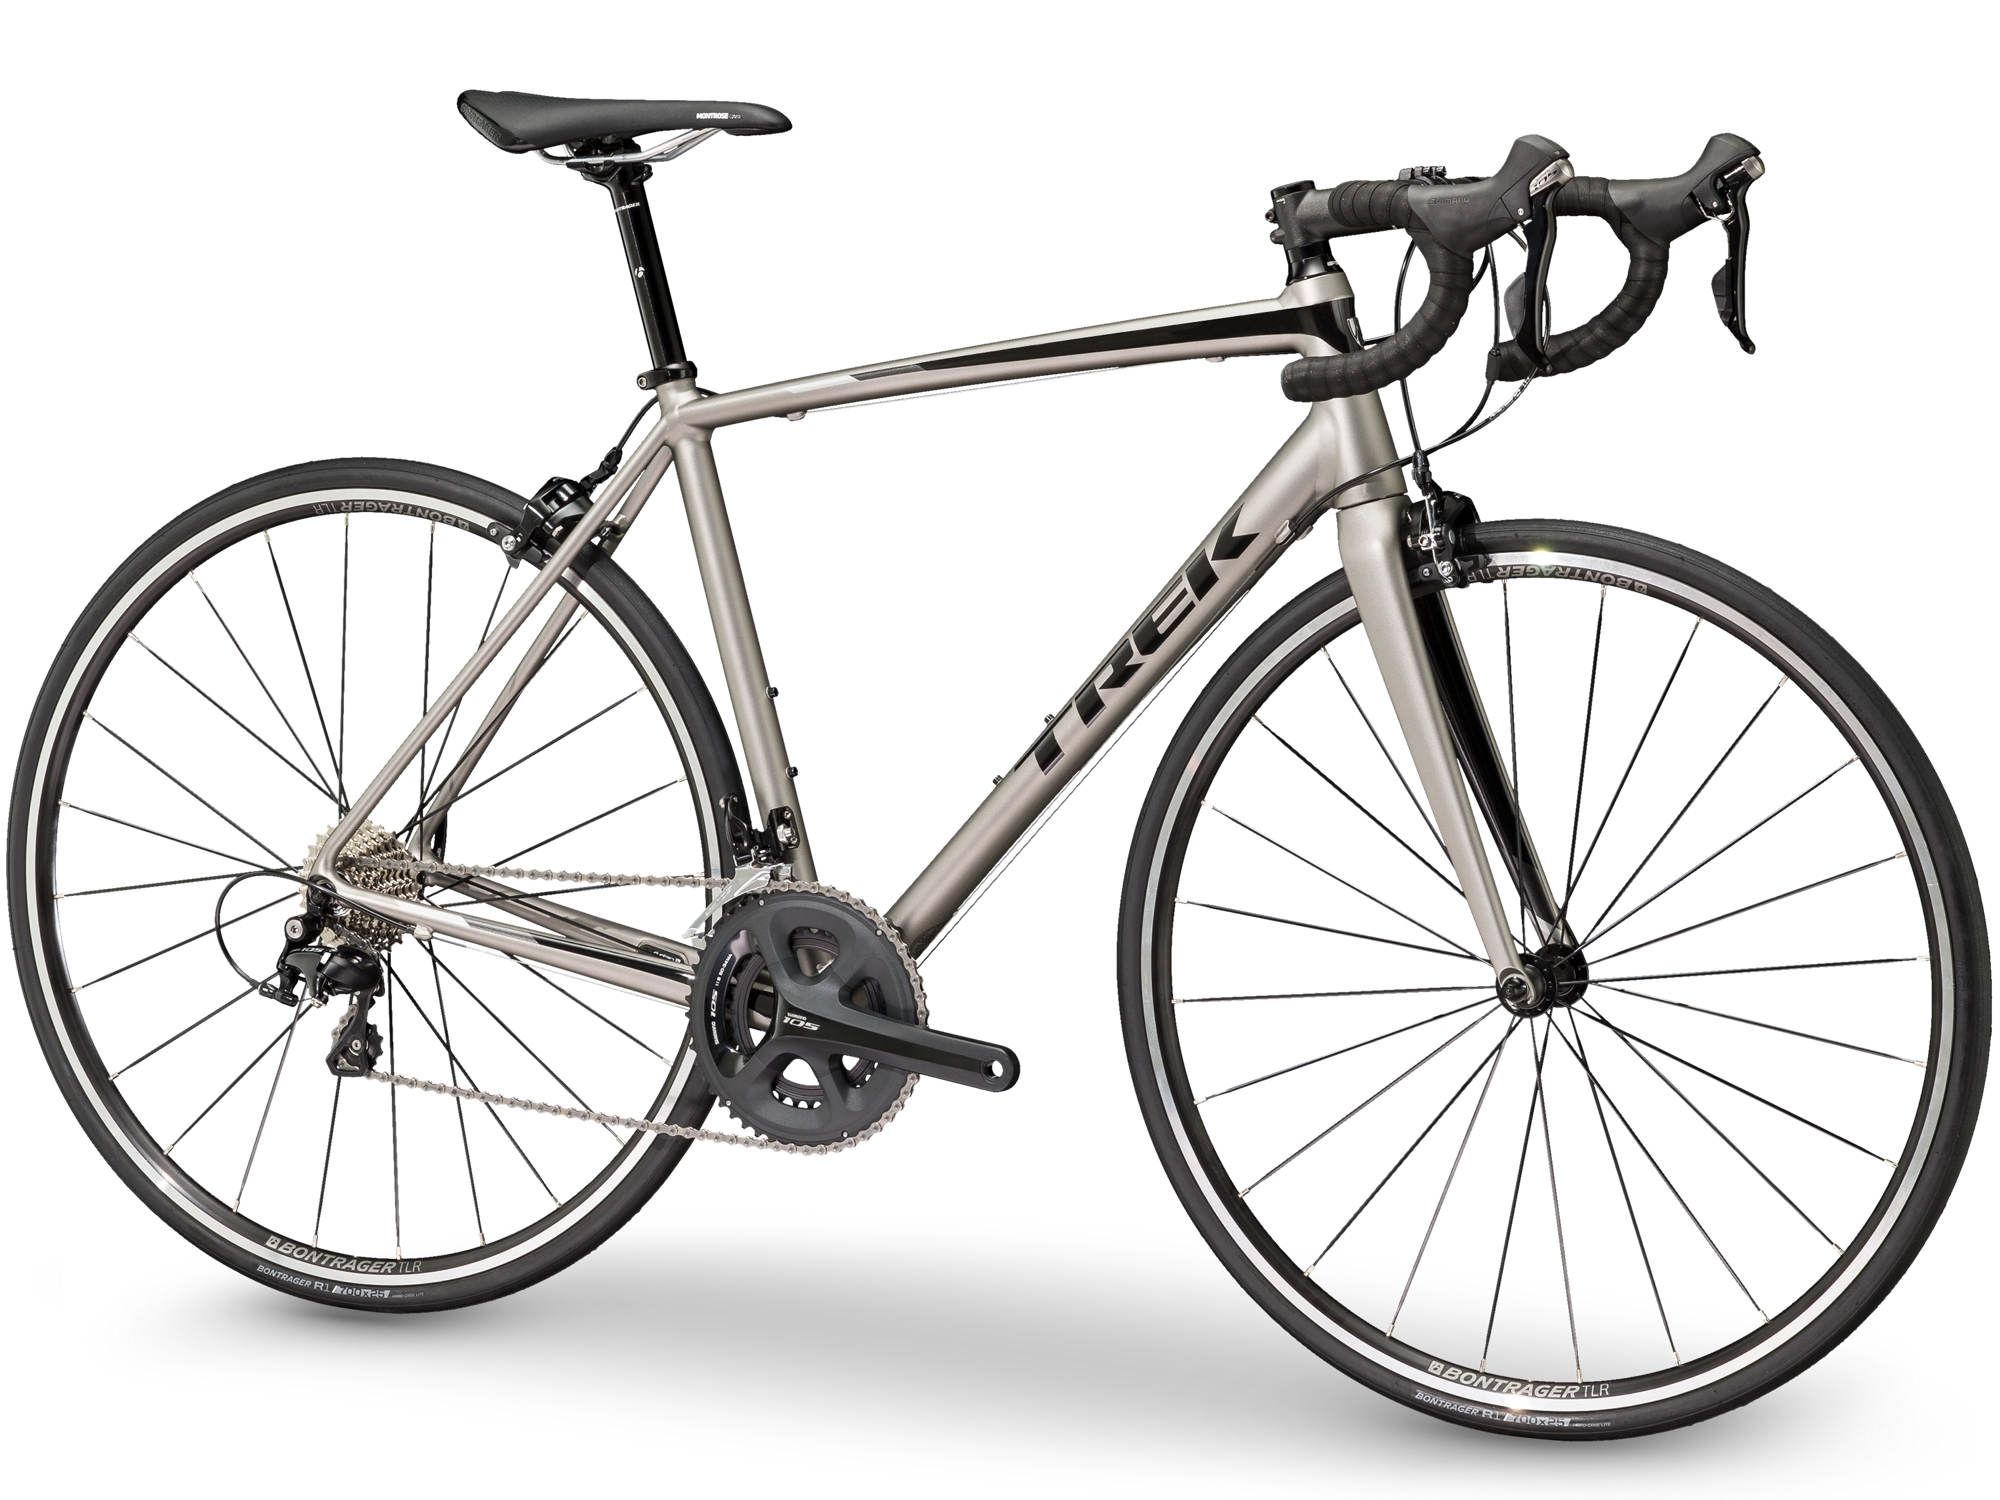 https://trek.scene7.com/is/image/TrekBicycleProducts/1406000_2018_A_2_Emonda_ALR_5?wid=2000